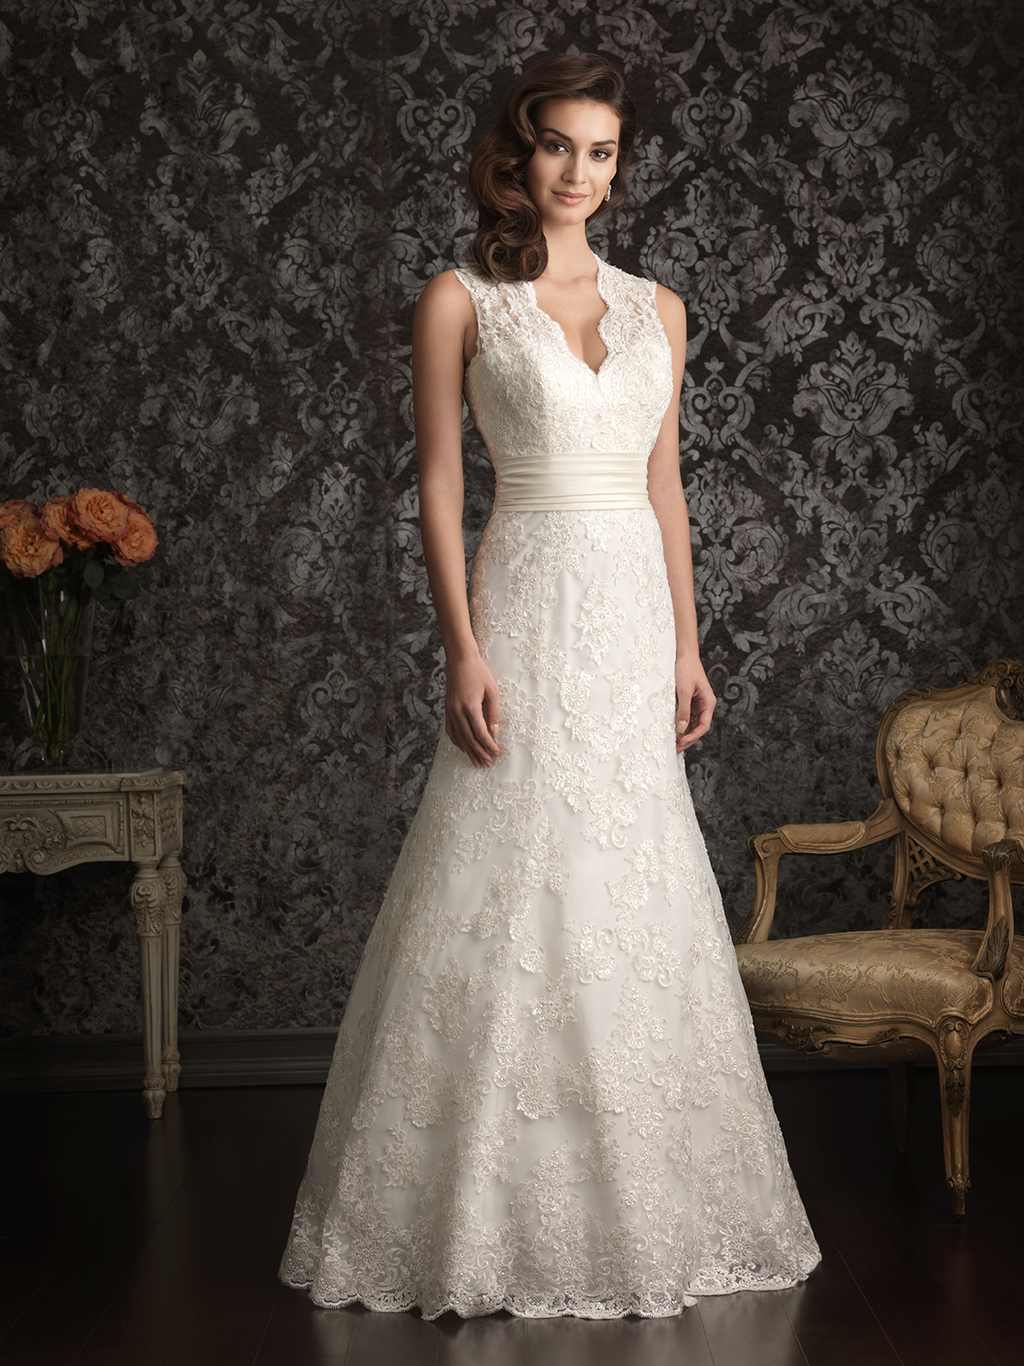 Allure-bridals-wedding-dress-bridal-gown-allure-collection-2013-9013f.full